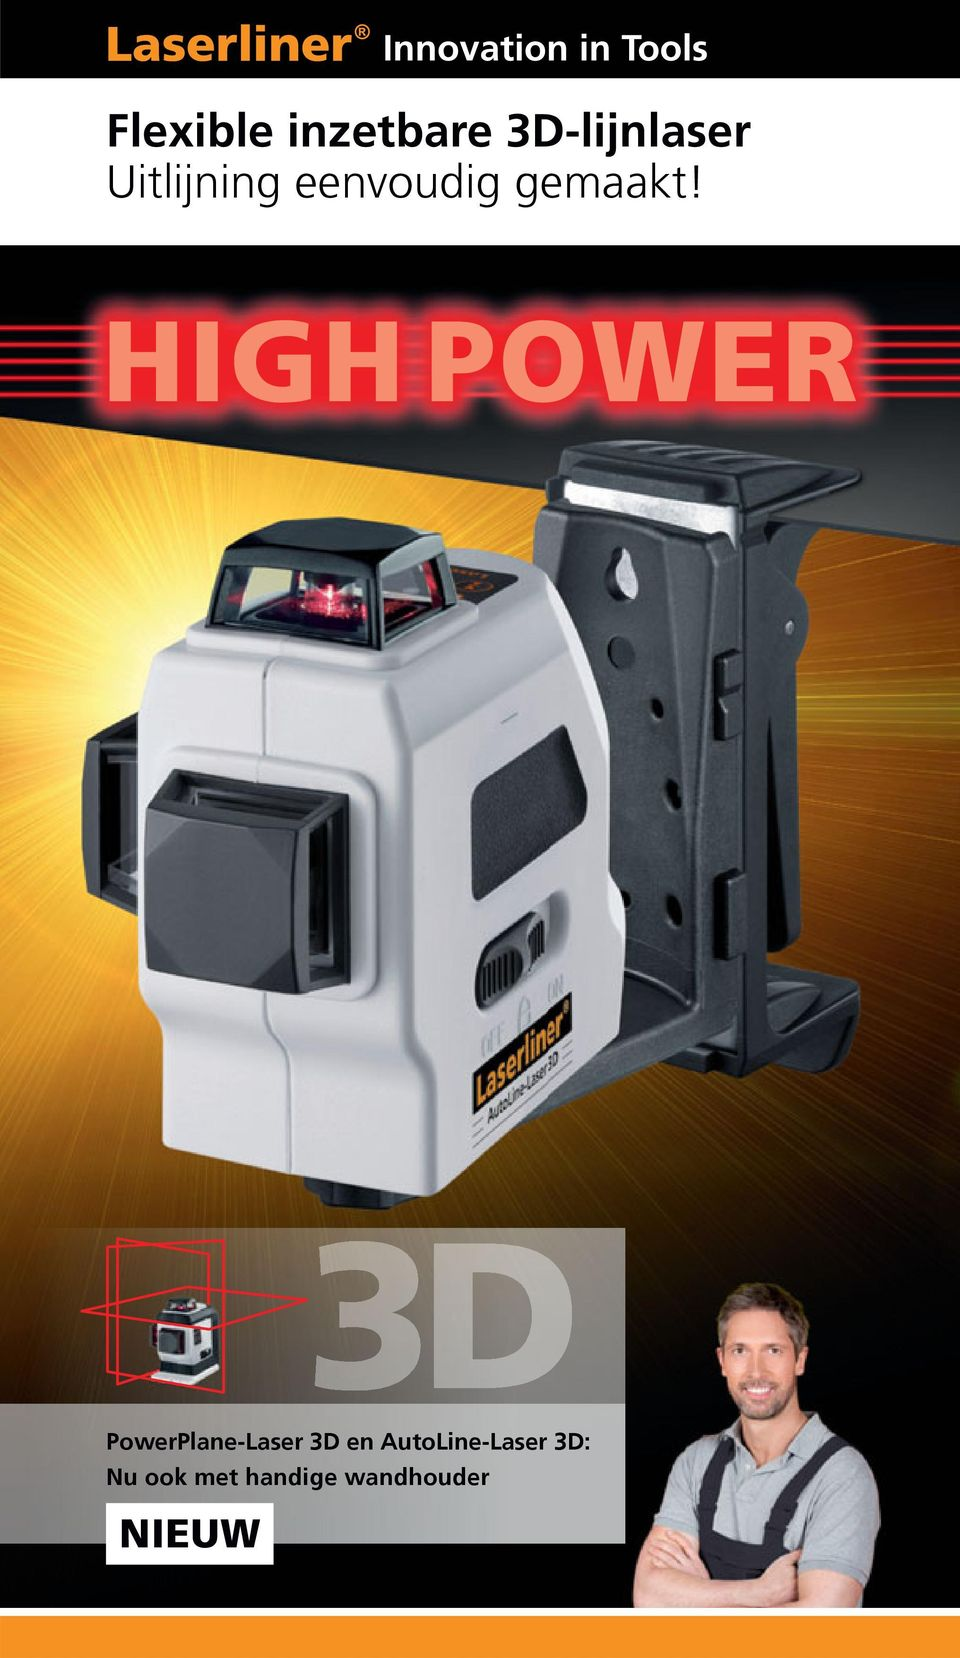 HIGH POWER PowerPlane-Laser 3D en